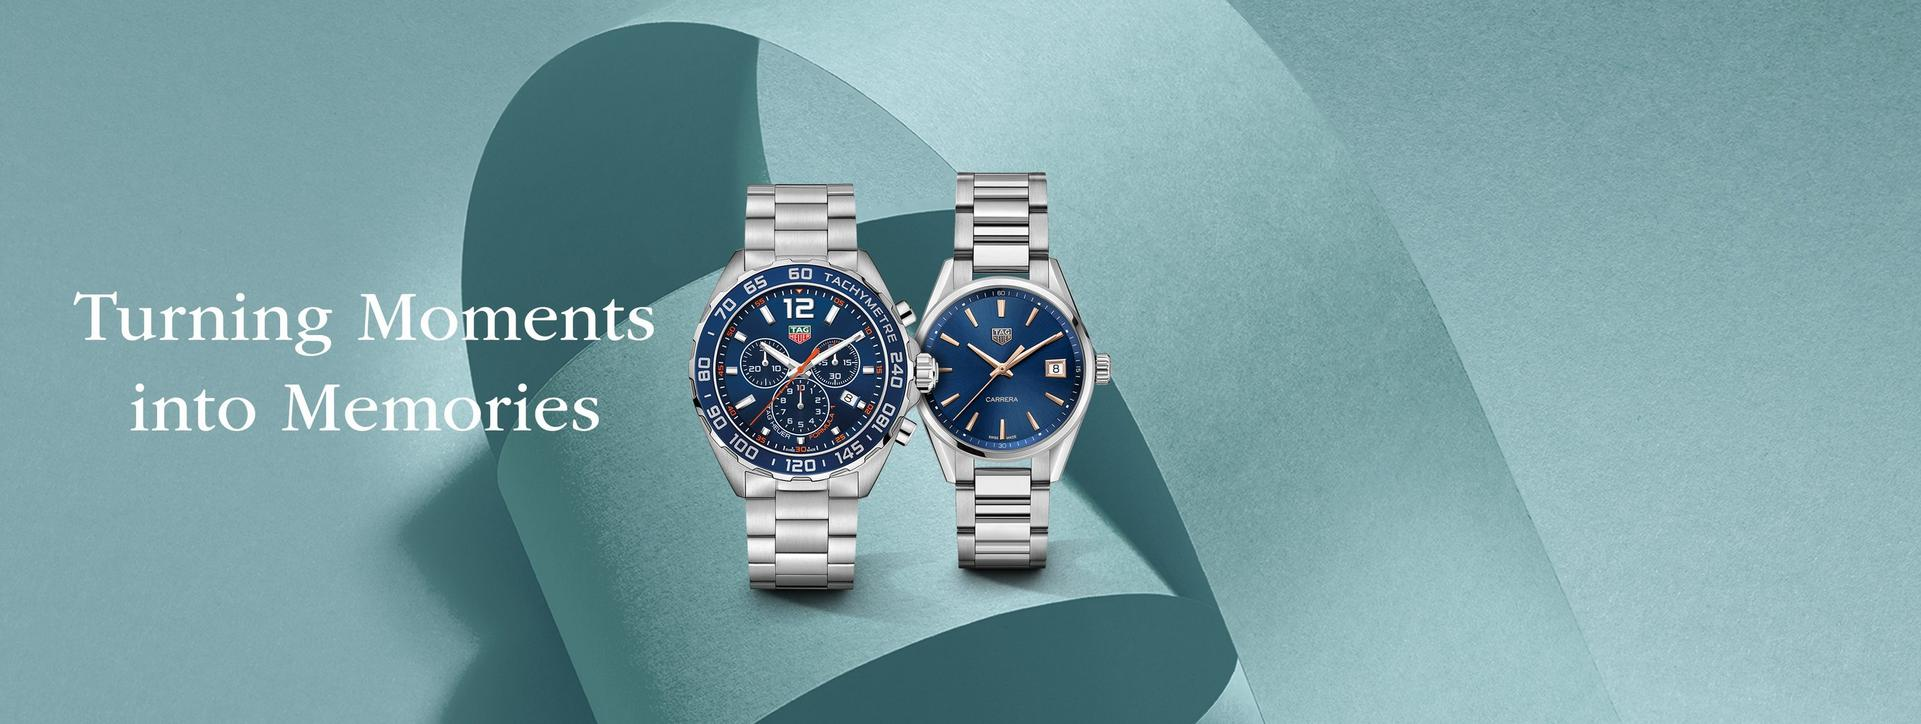 Find the perfect Valentine's gift for your loved one from our collection of watches from iconic brands such as BOSS, Michael Kors, TAG Heuer and Omega